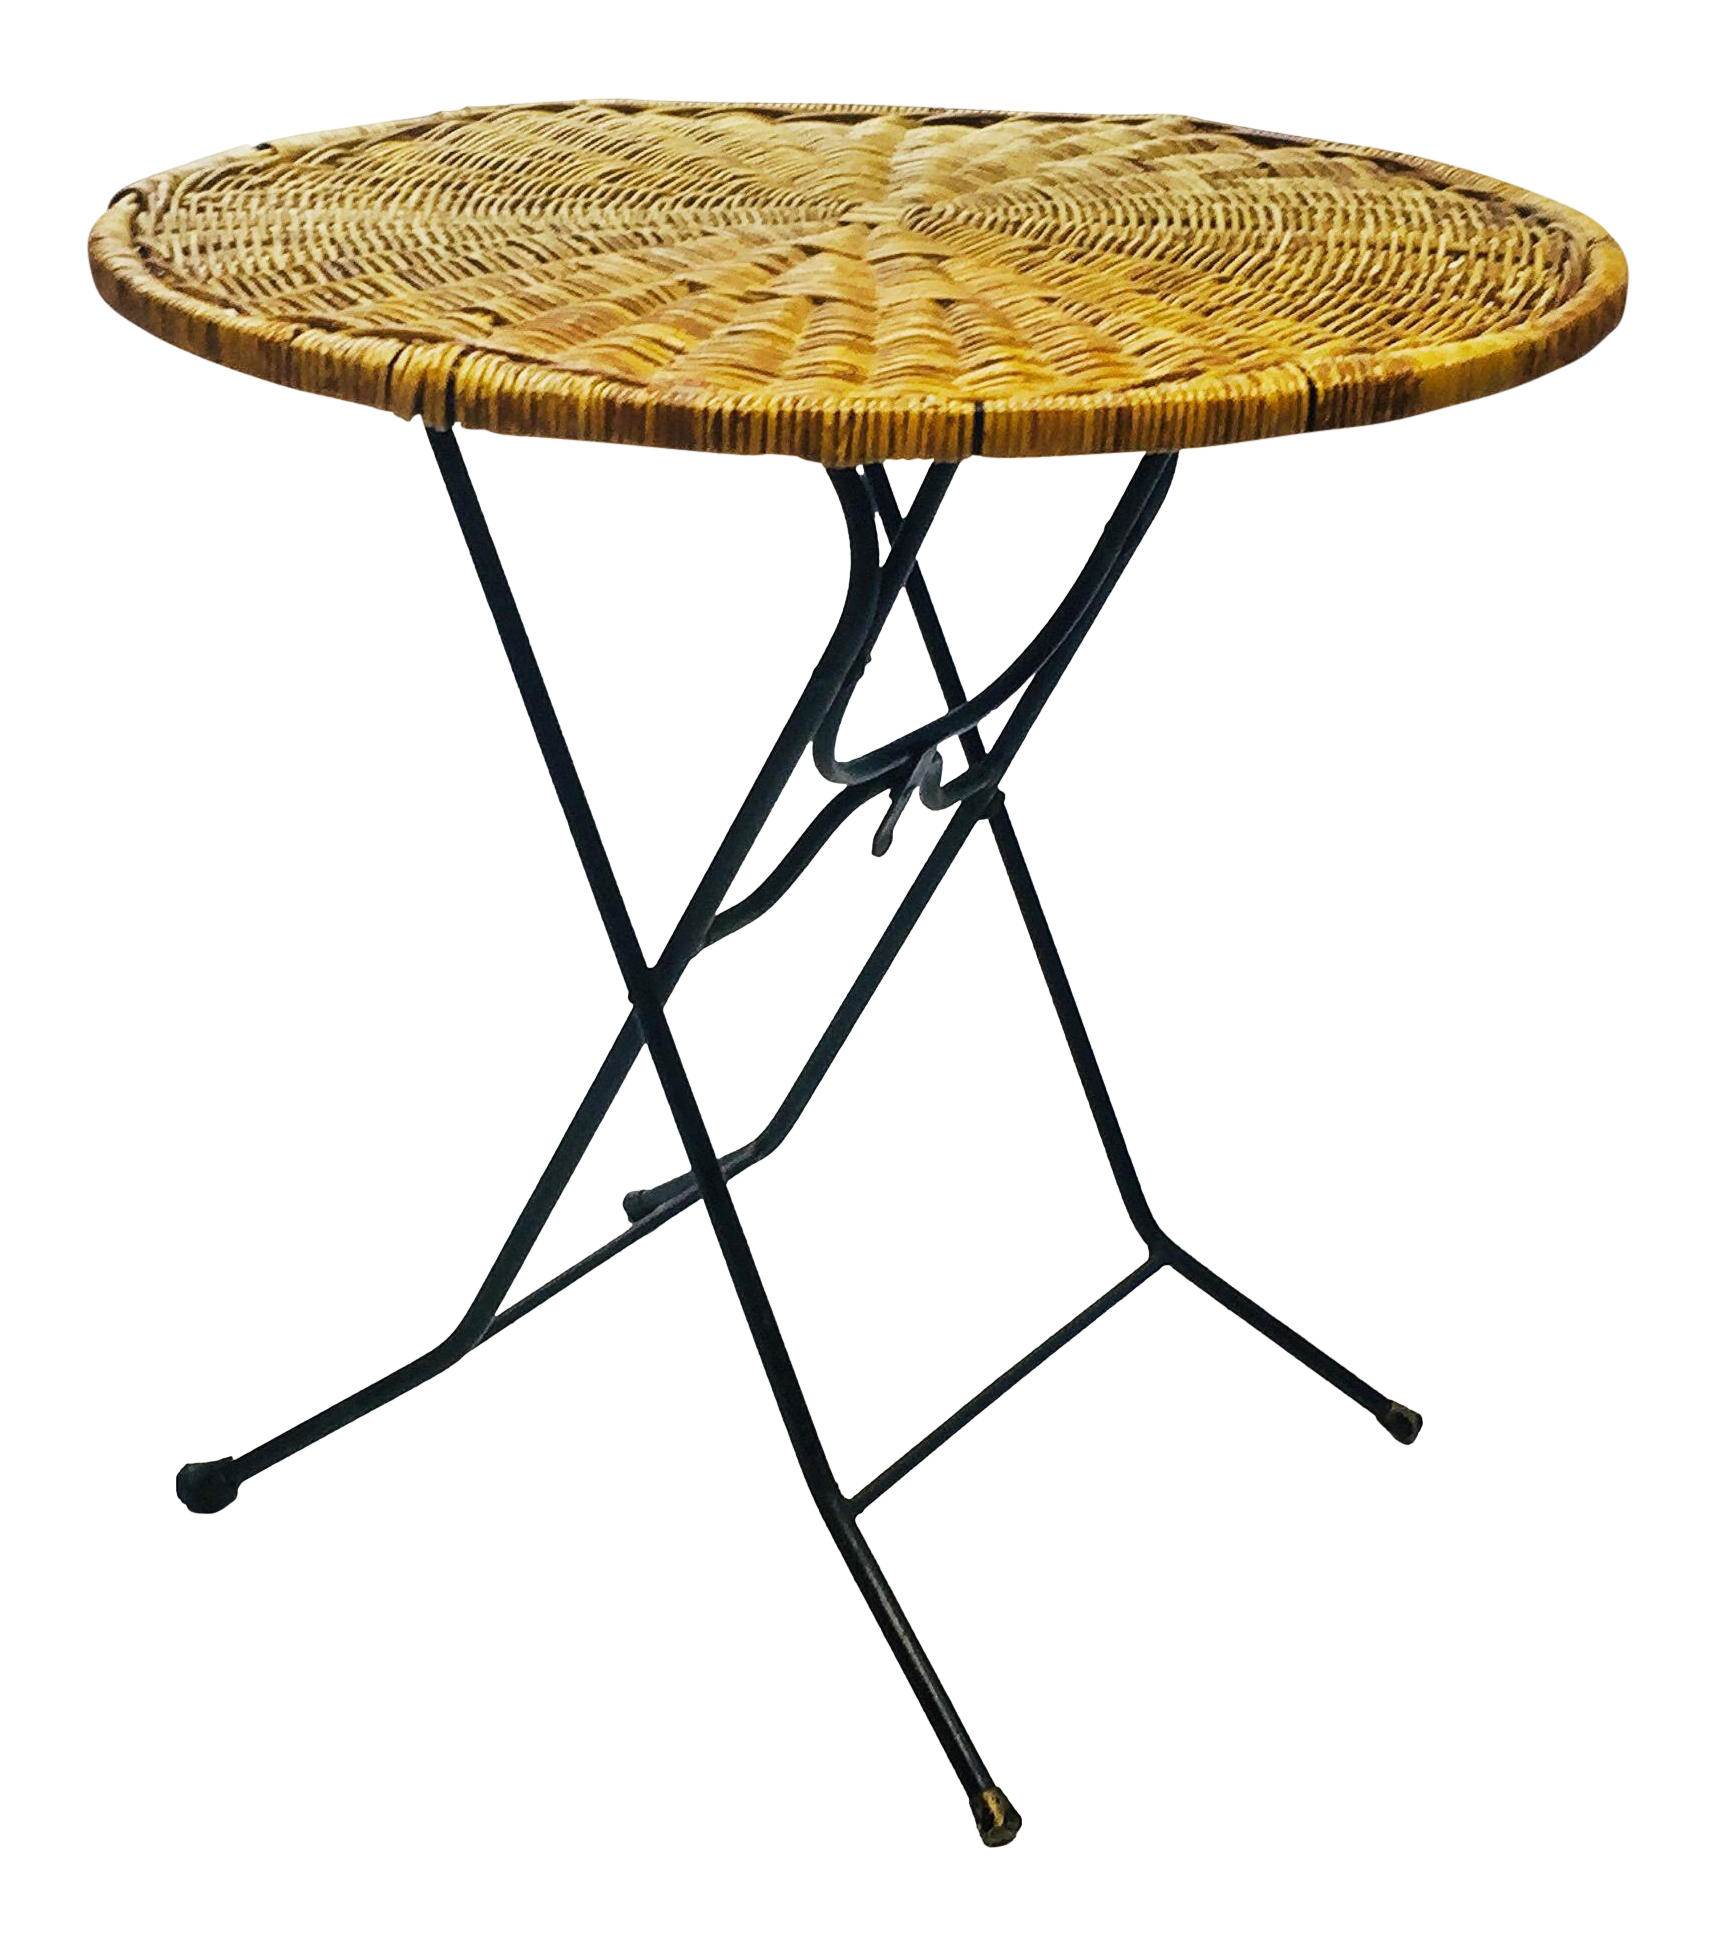 mid century modern wicker iron round folding side table chairish and foldable accent brown indoor teak furniture bistro height living room with drawers wooden floor lamp attached